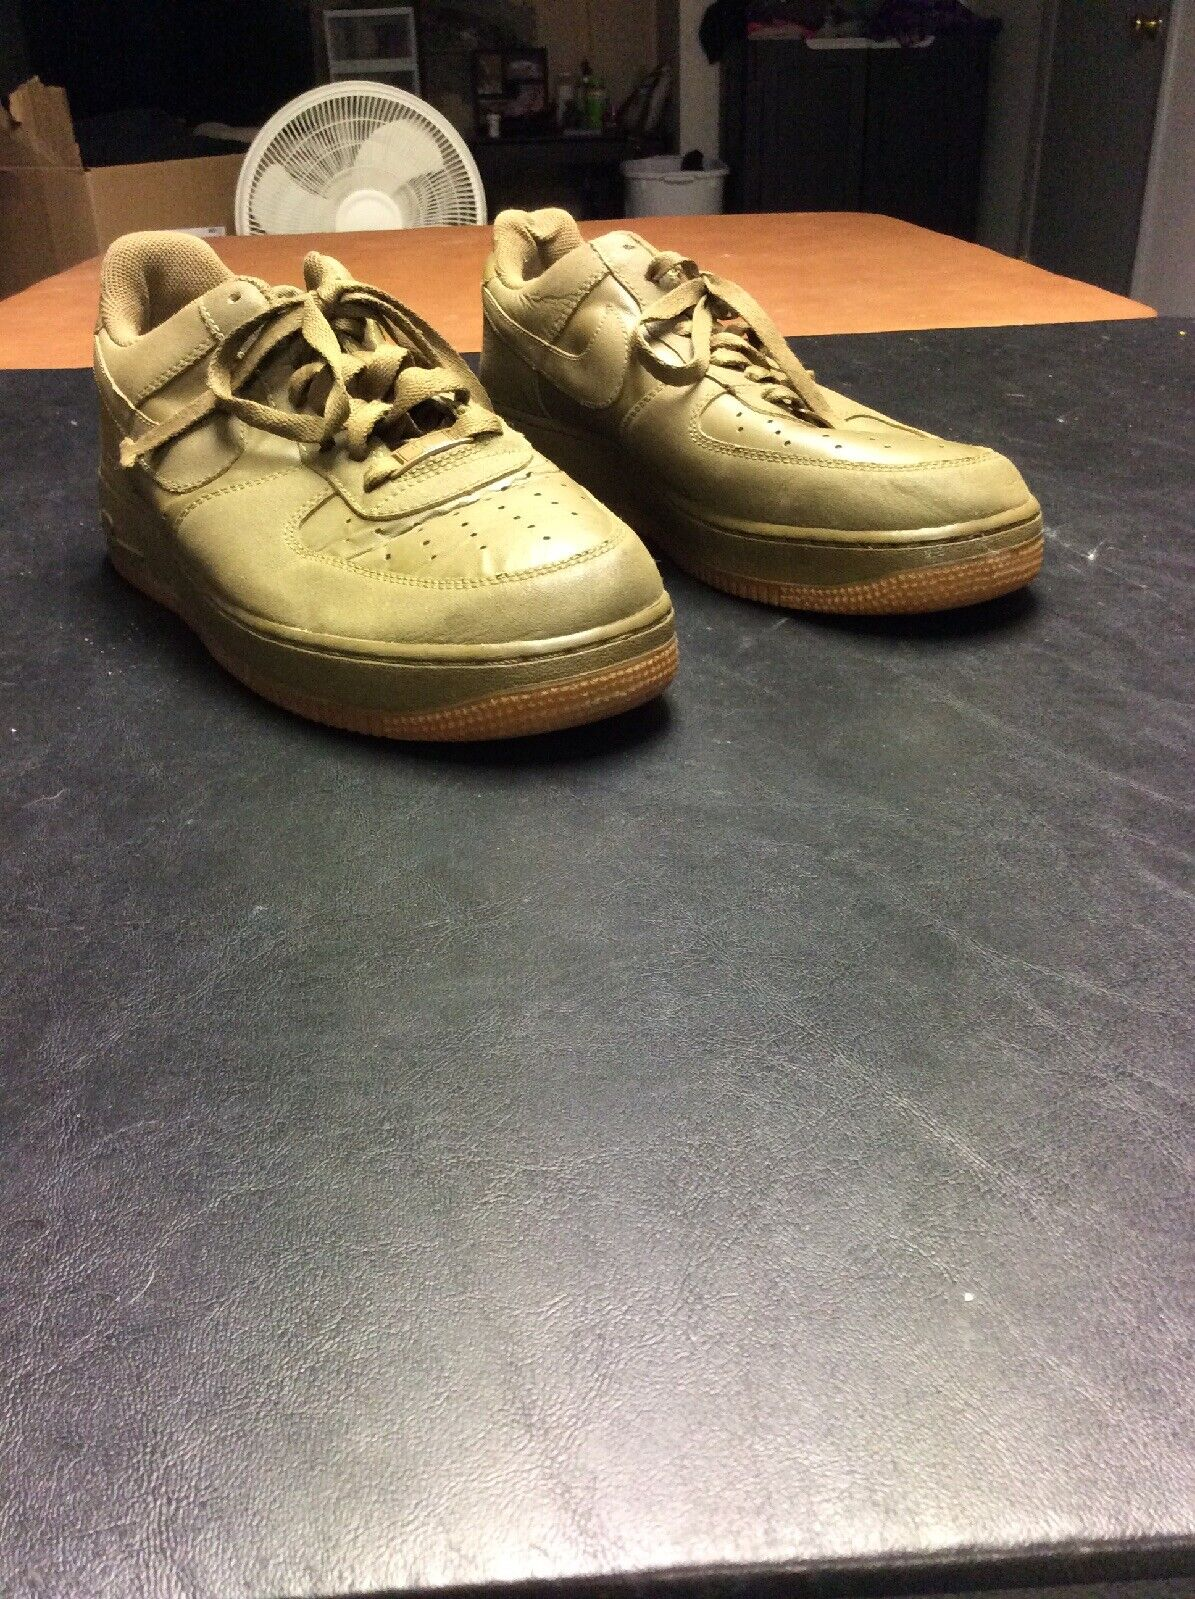 Mens Olive Green Nike Air Force 1 shoes Size 10 (315122-201)